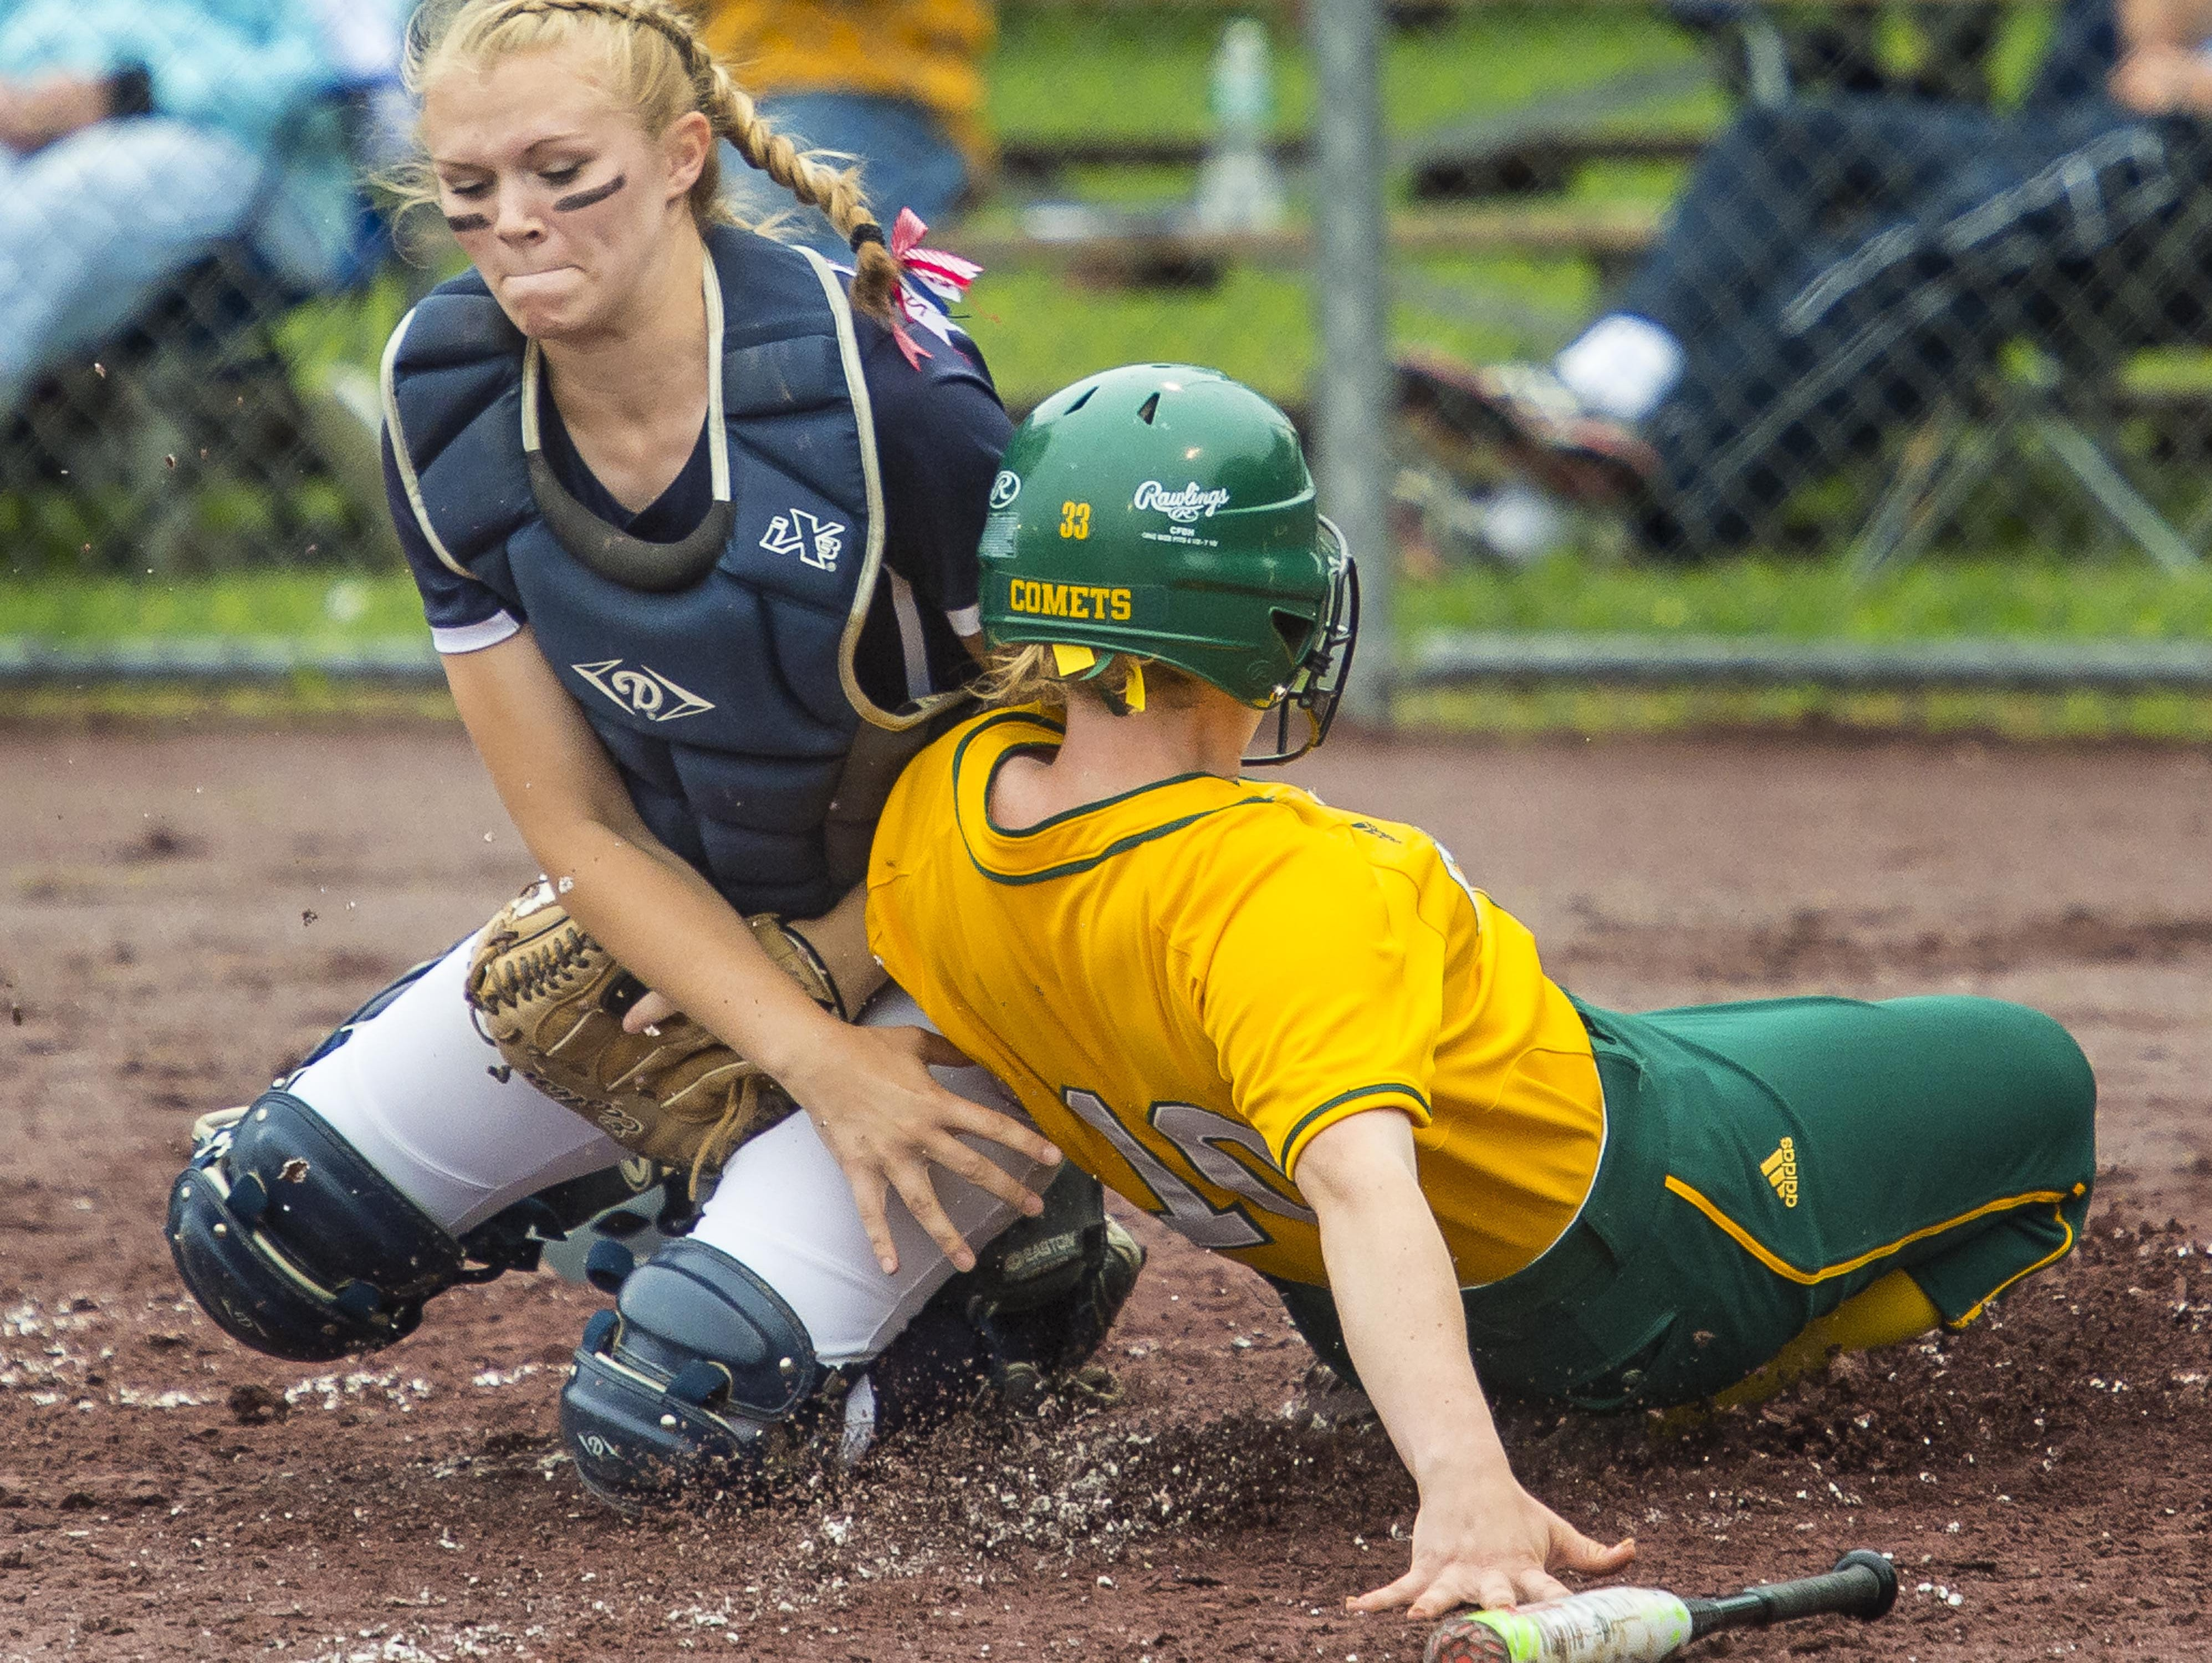 Mt. Anthony's Julie Elwell, left, tags out BFA's Chrissy Lawton at home during the Division I state high school softball championship in Poultney on Monday, June 15, 2015.